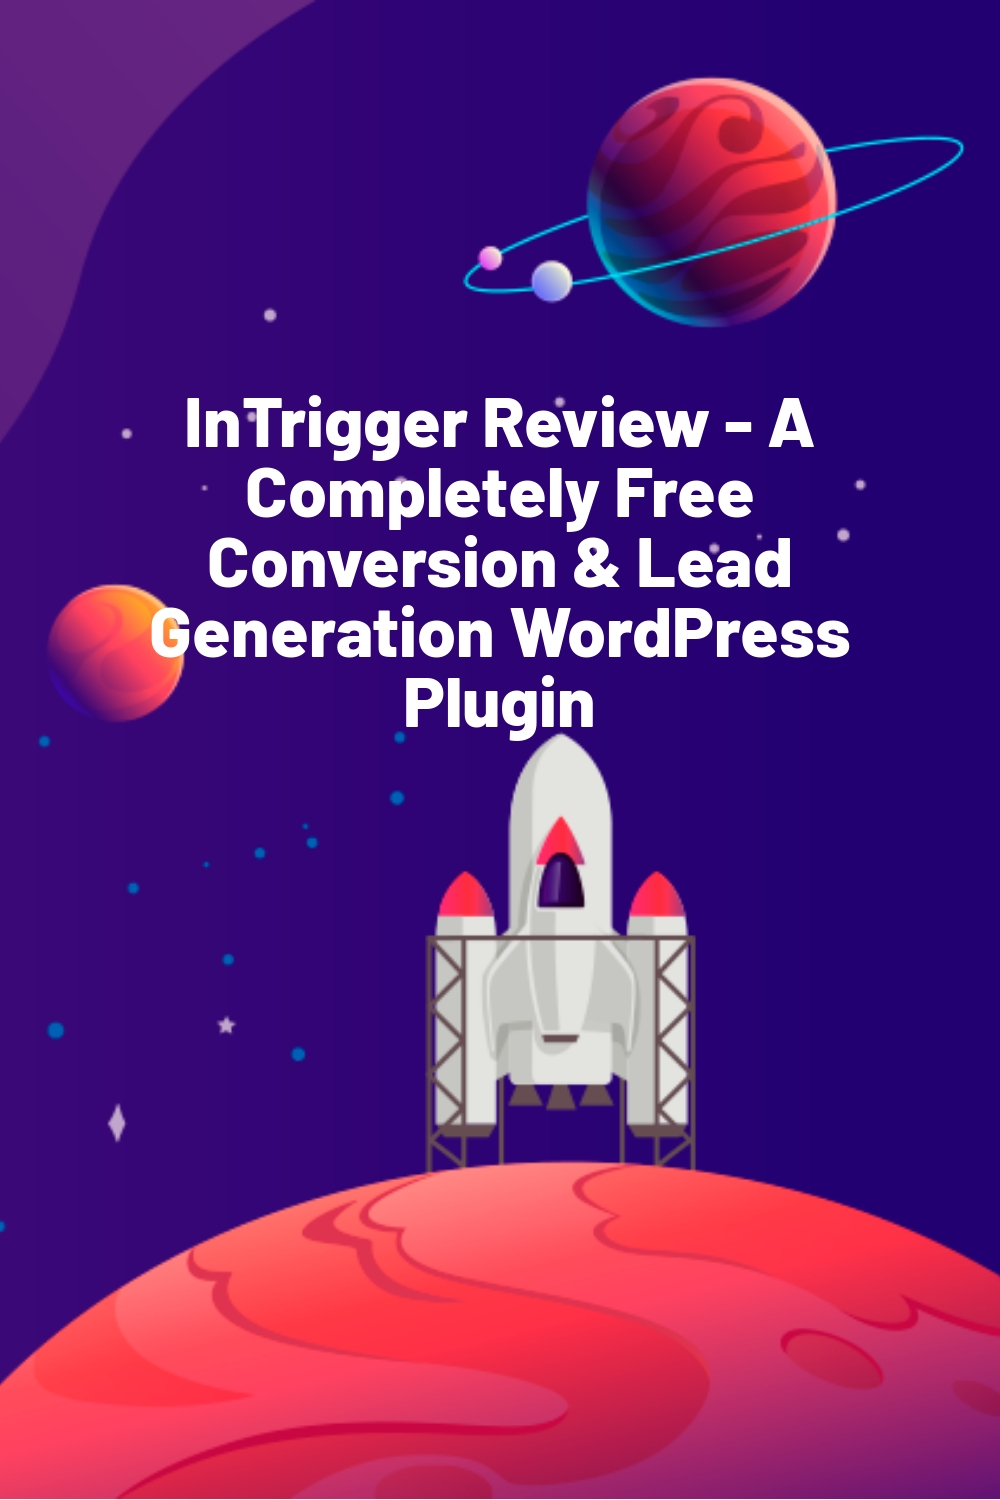 InTrigger Review – A Completely Free Conversion & Lead Generation WordPress Plugin